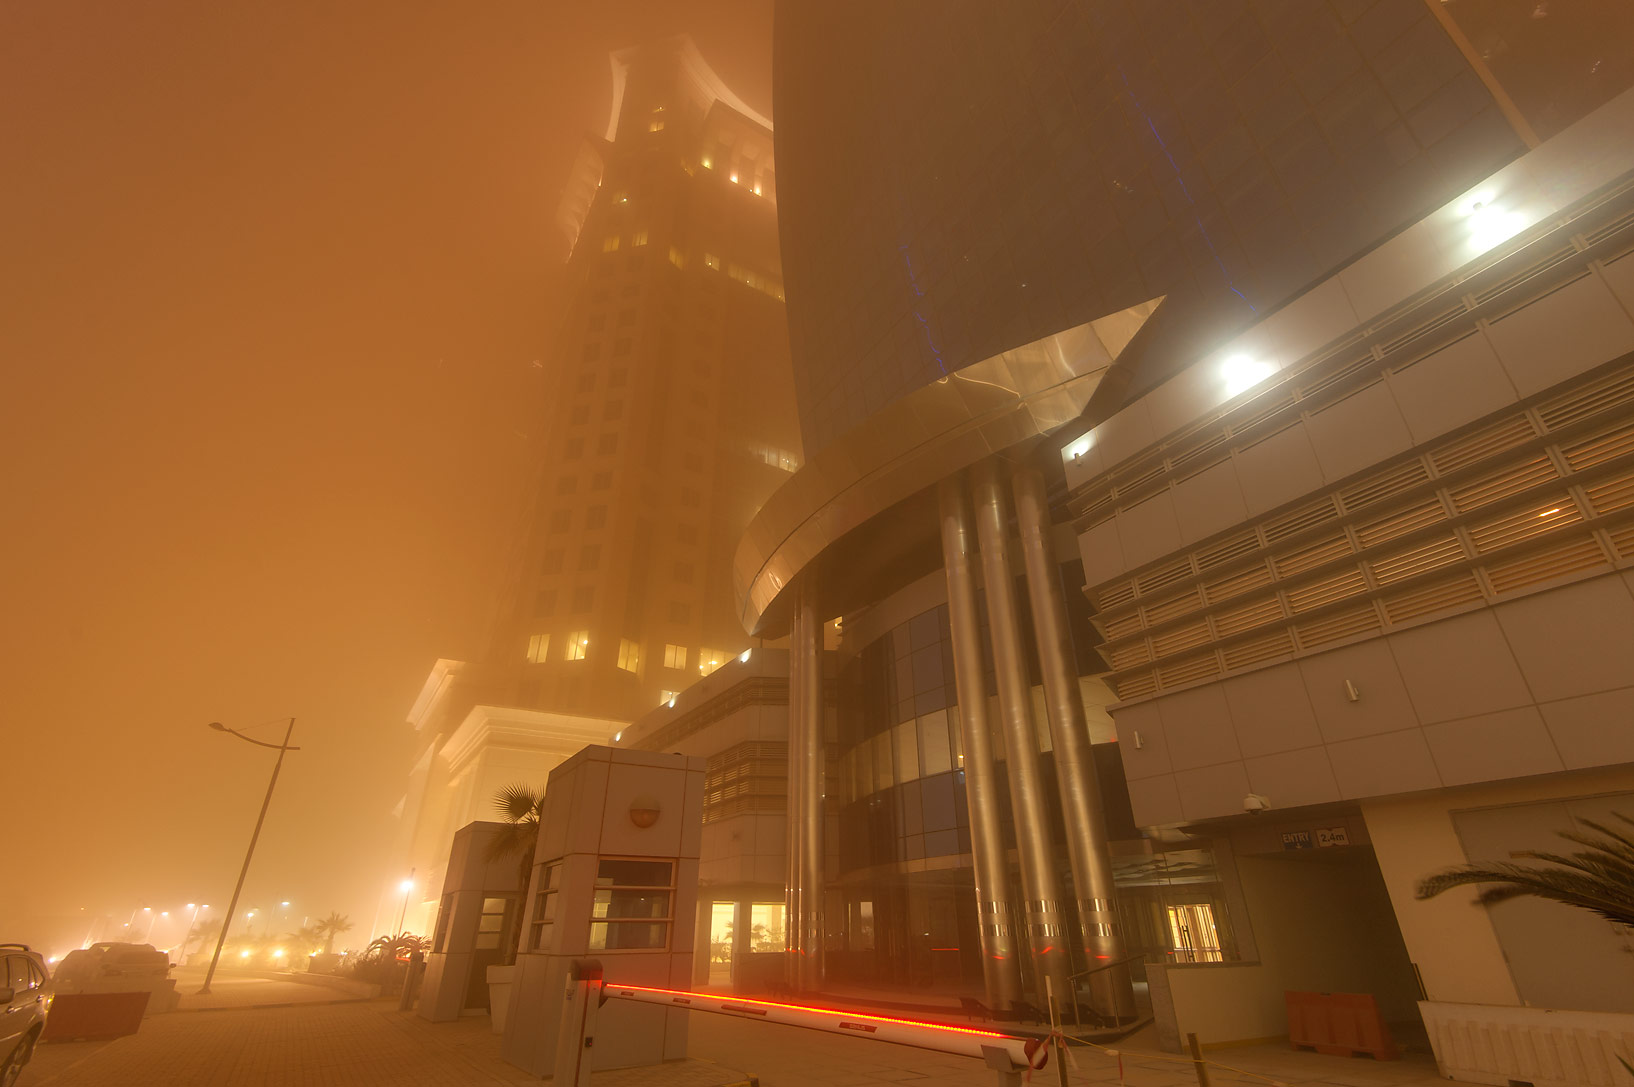 Al Huda Engineering Works Tower in West Bay during dust storm. Doha, Qatar